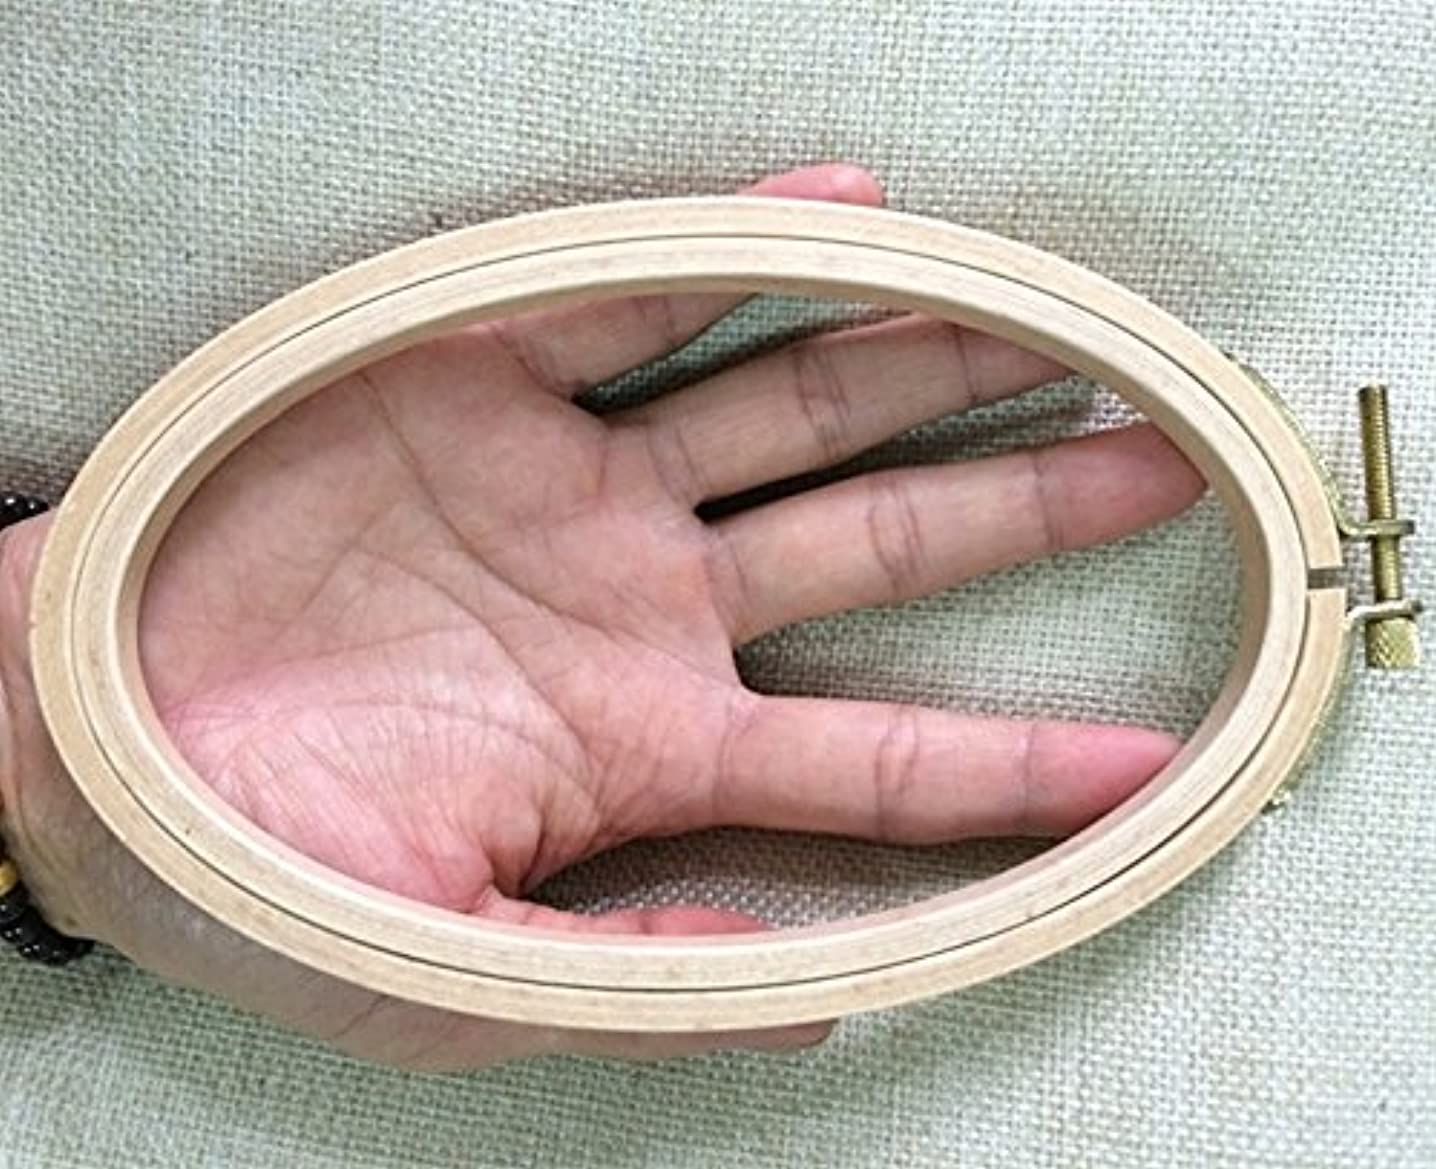 WRMHOM 6.33.95 Inch Oval Wooden Embroidery Hoop 1610cm Oval Hand Stitching Hoop - Cross Stitch Hoop - Framing Hoop - Stitchery Hoop - Craft Supply Hoop (2PCS/PACK)